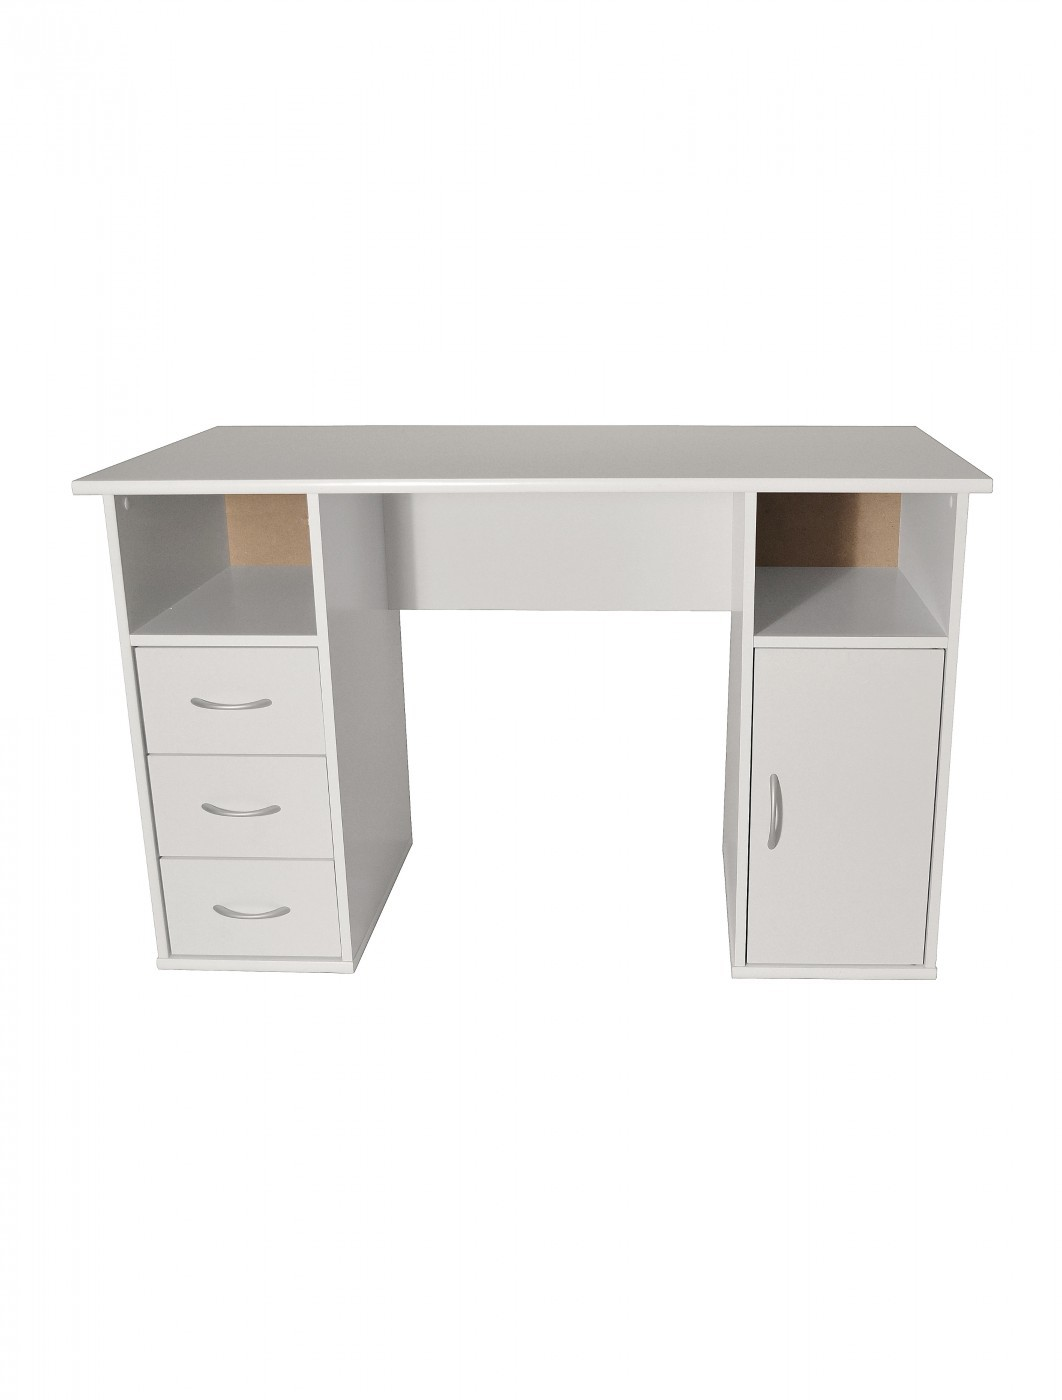 Maryland computer workstation aw12010whi 121 office furniture - Home office furniture maryland ...